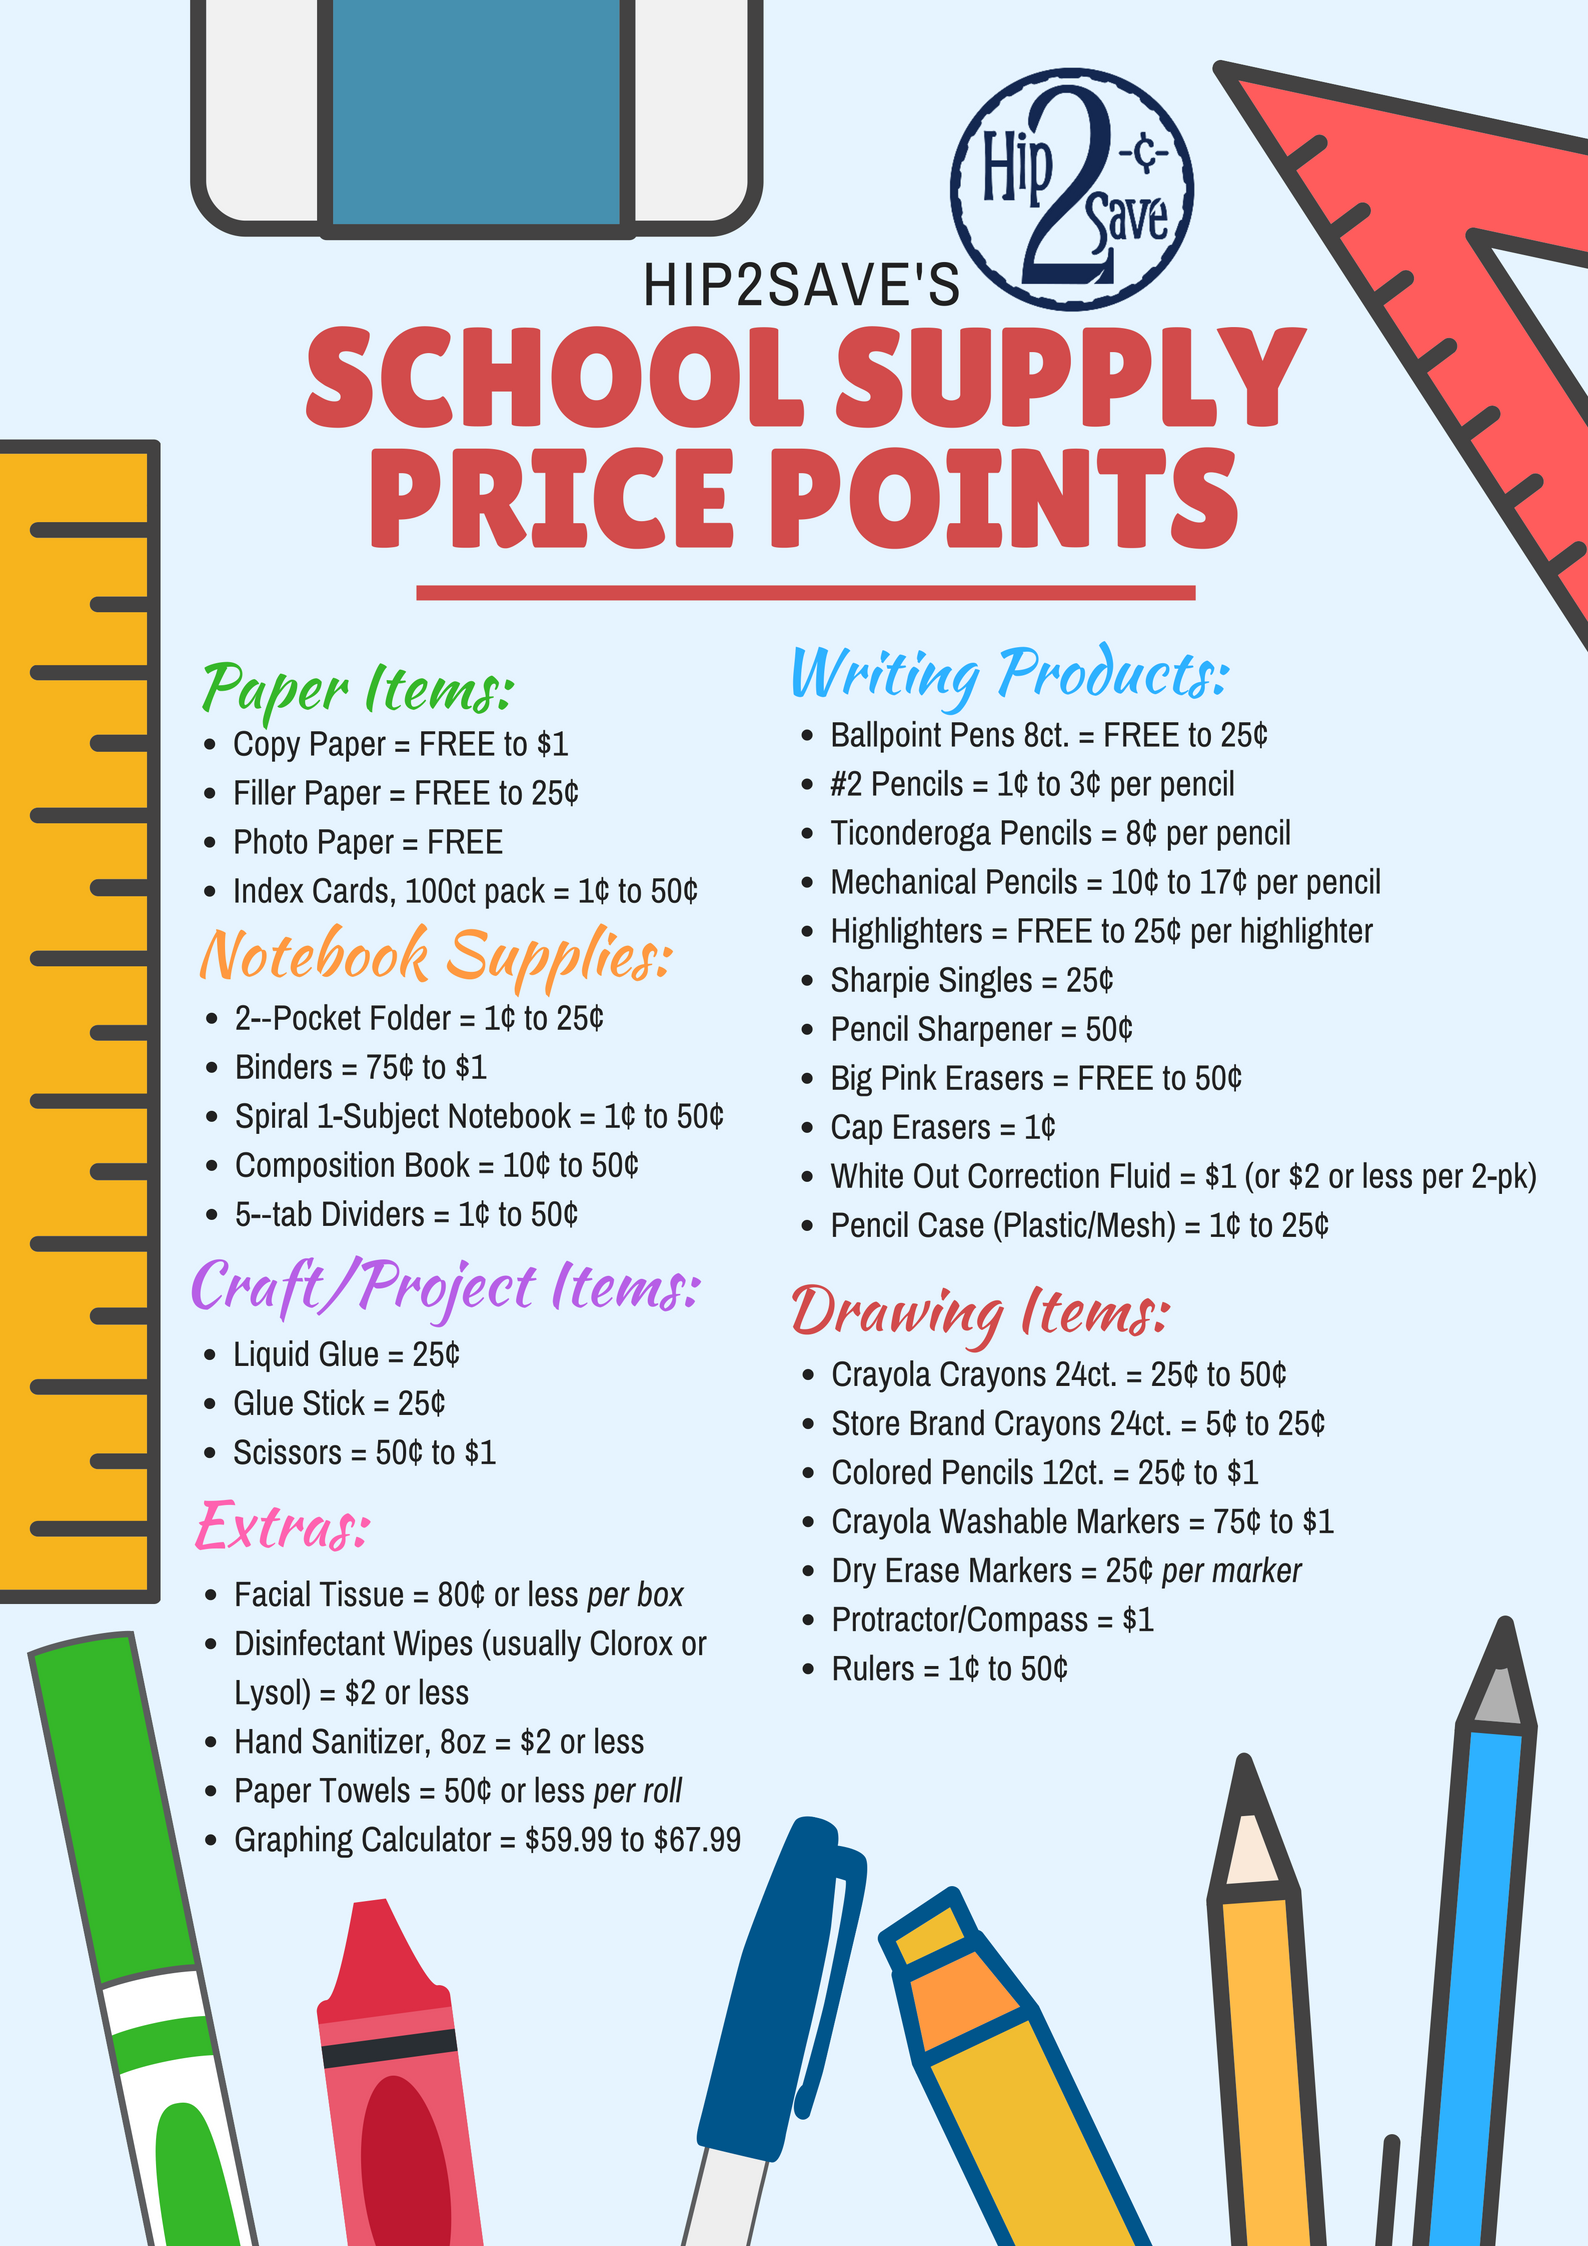 We've Put Together Our 2019 School Supply Price Points List & Include a Free Printable